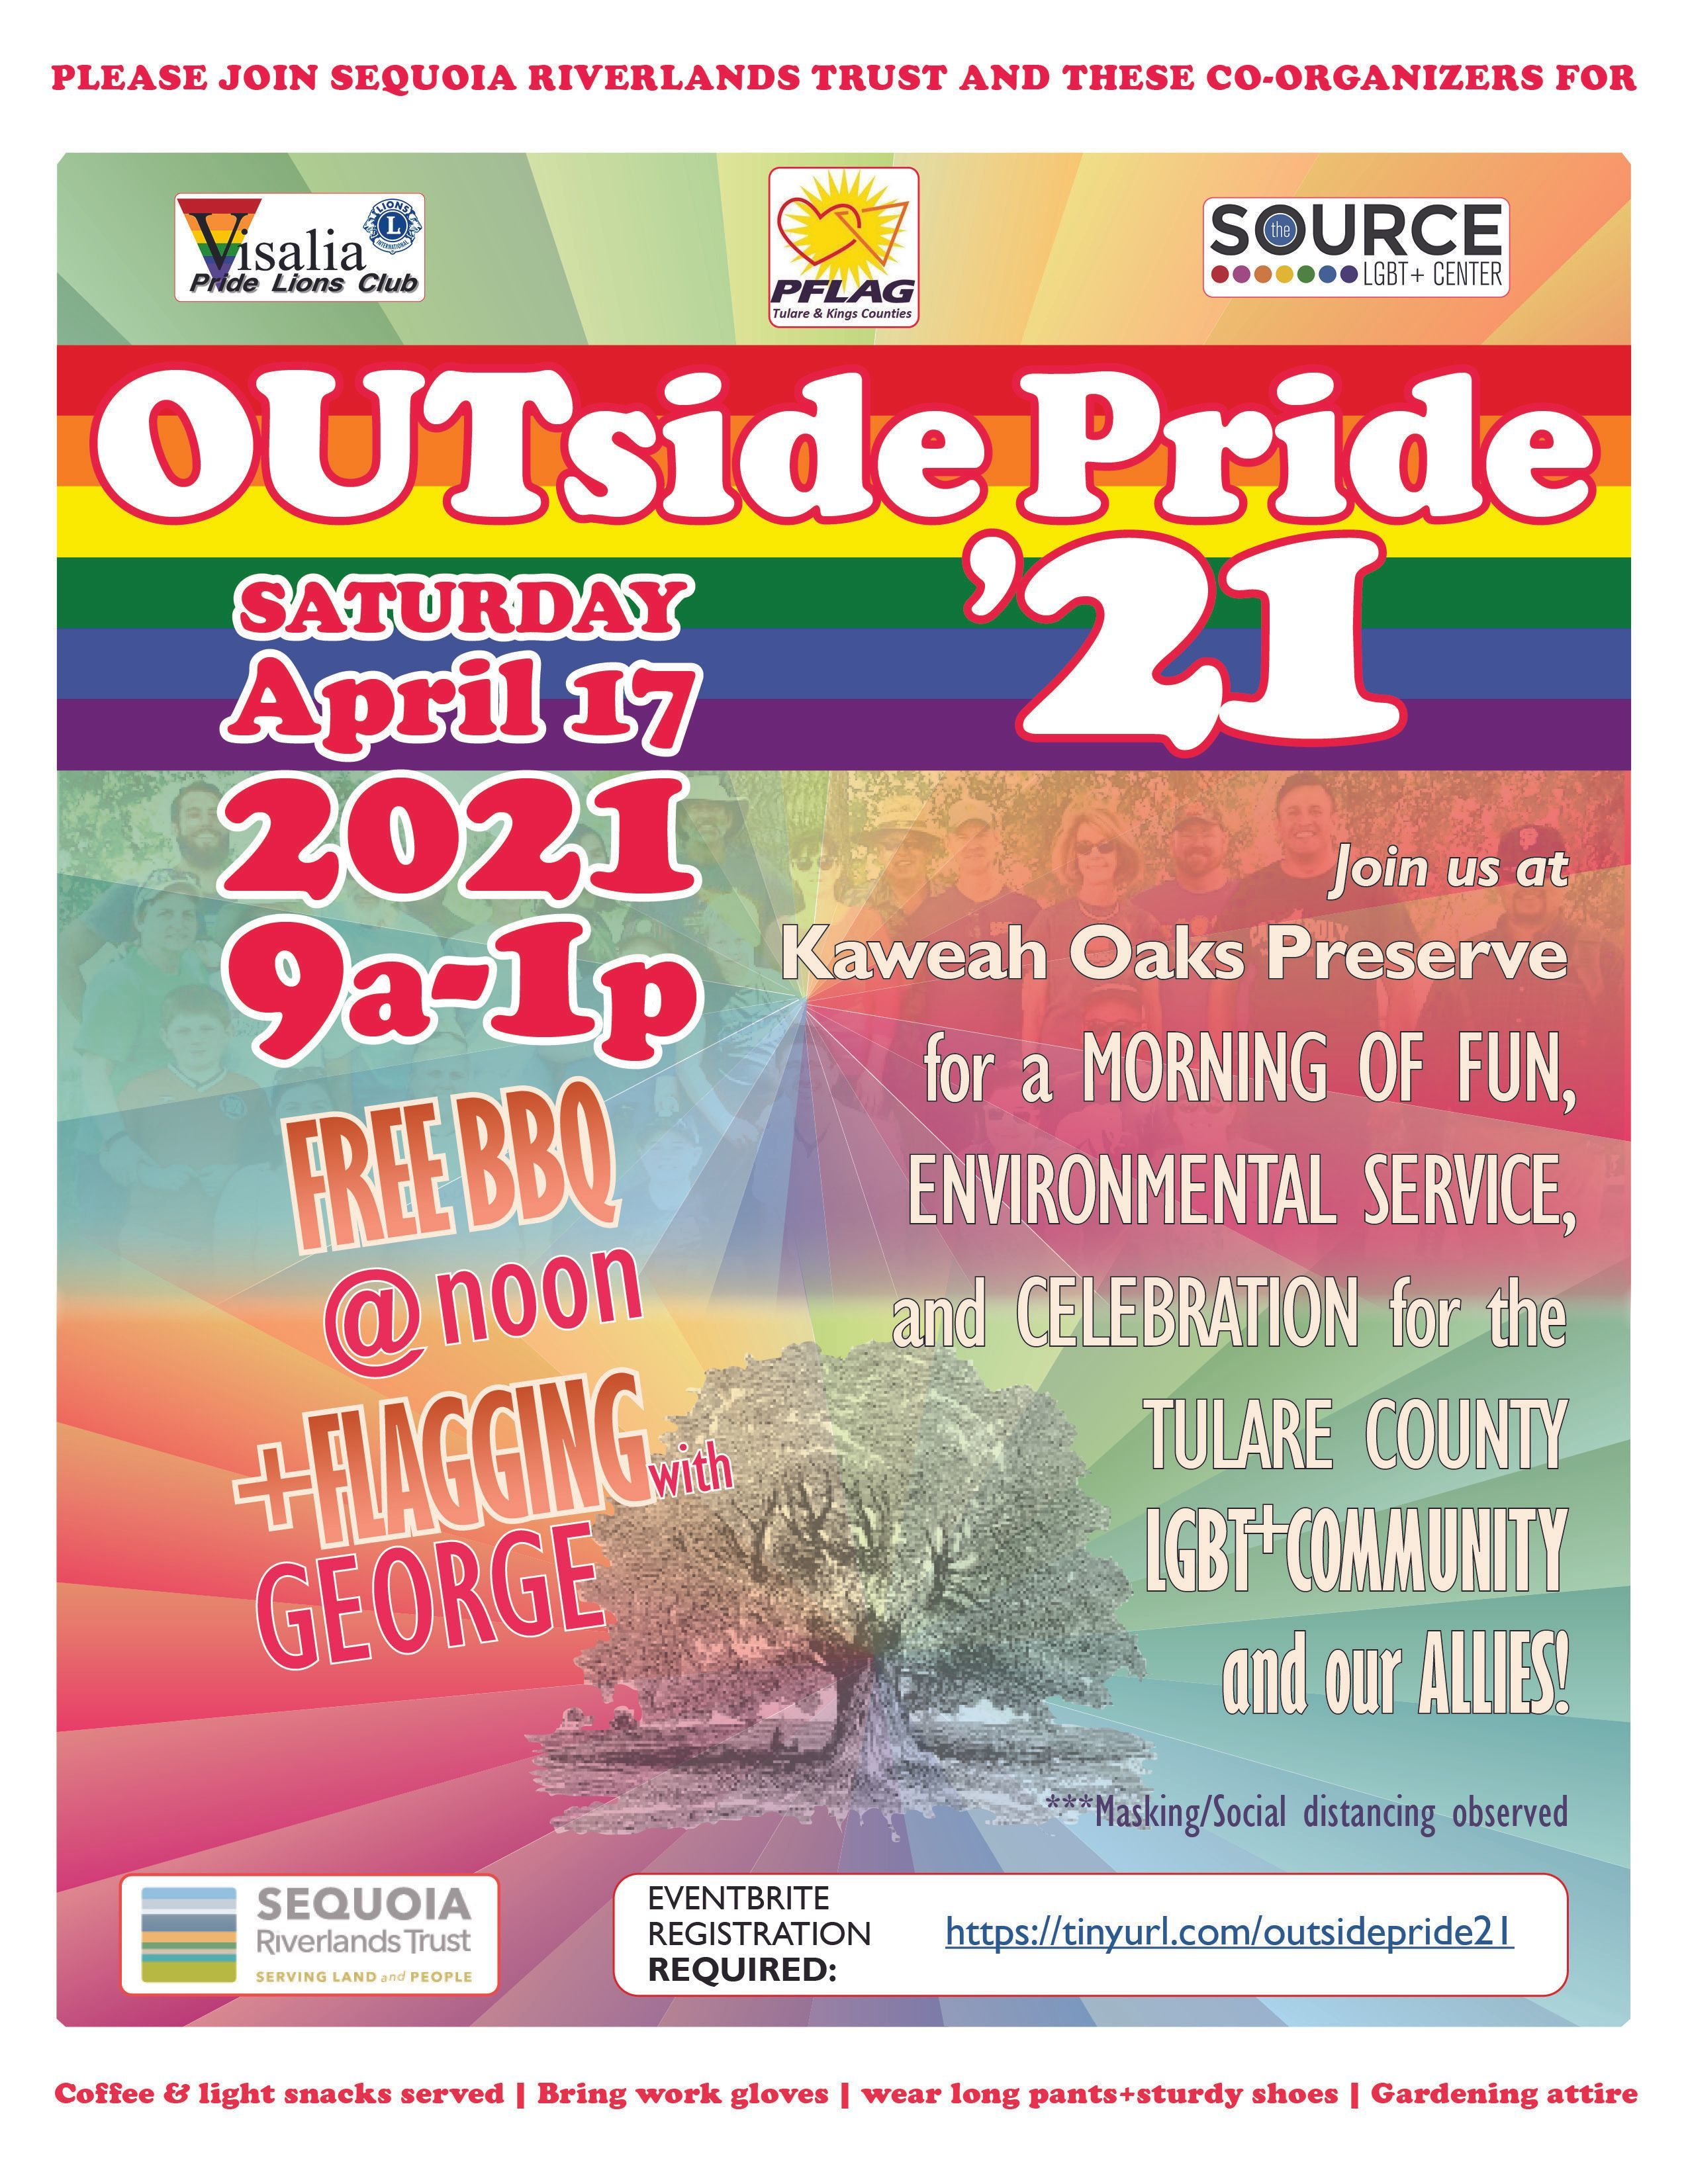 OUTside Pride returns to Kaweah Oaks Apr. 17 (see signup on flyer)